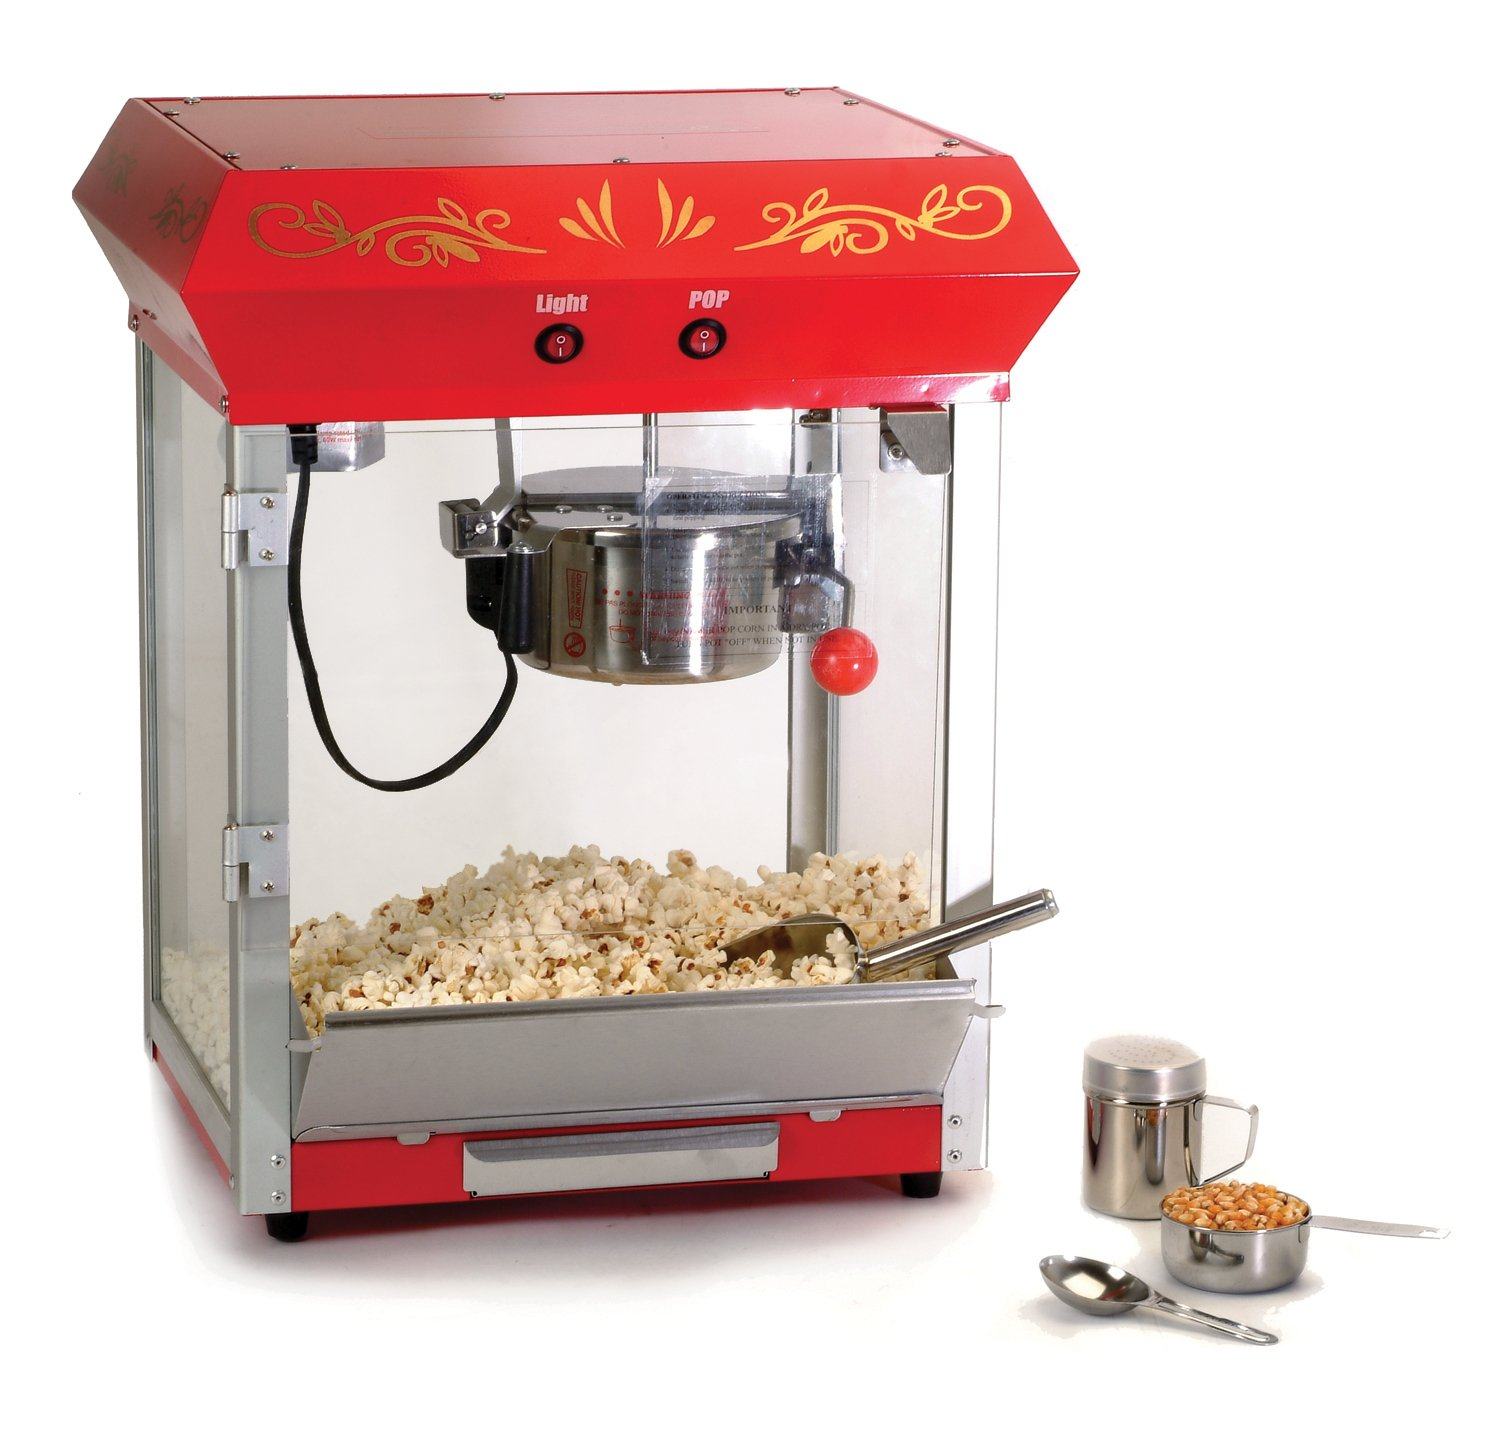 Elite Deluxe EPM-450 Maxi-Matic 4 Ounce Old-Fashioned Tabletop Popcorn Popper Machine with Accessories, Red